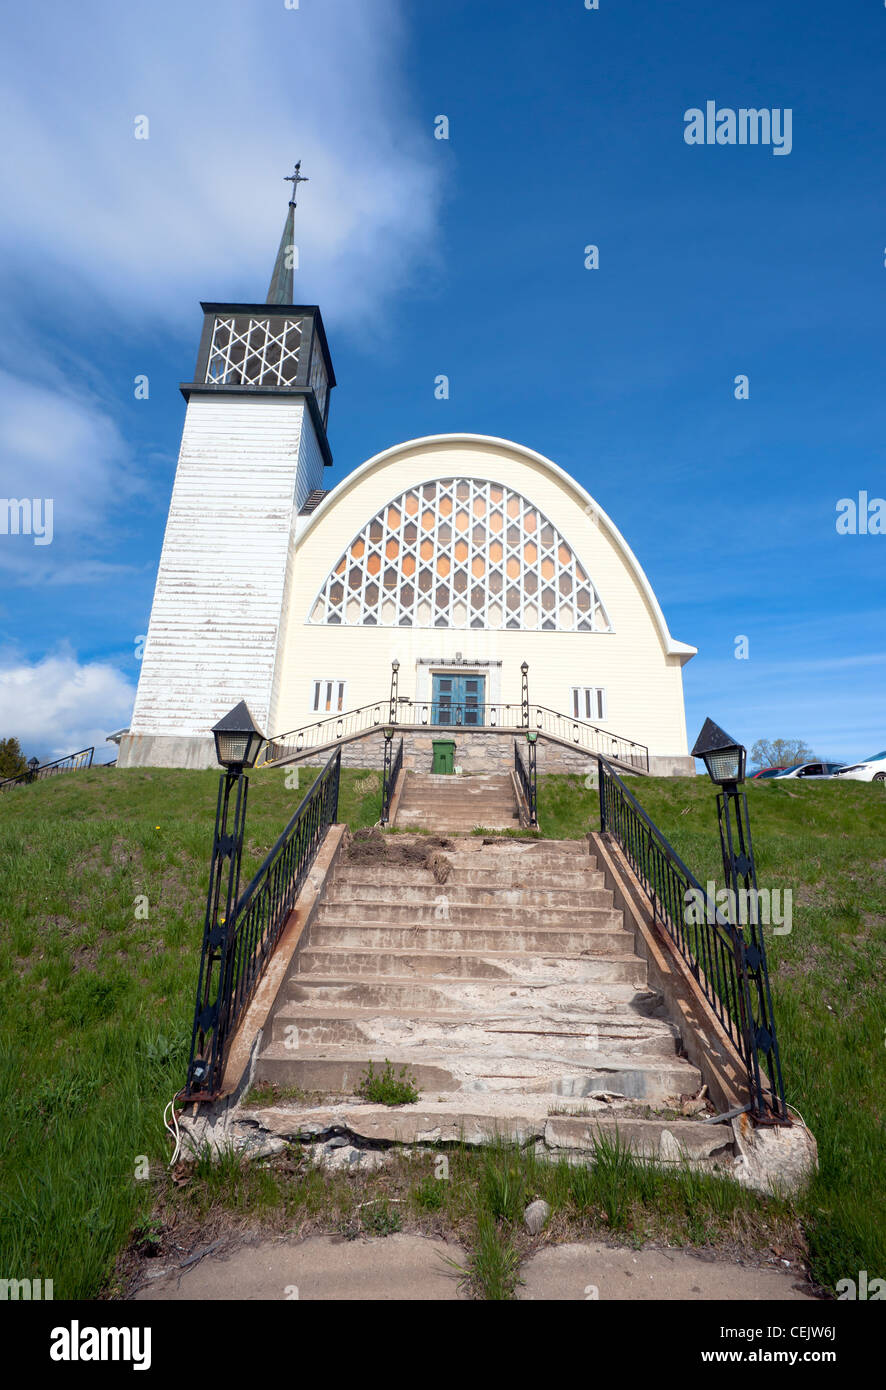 Neglected church in the Charlevoix region, province of Quebec, Canada. - Stock Image